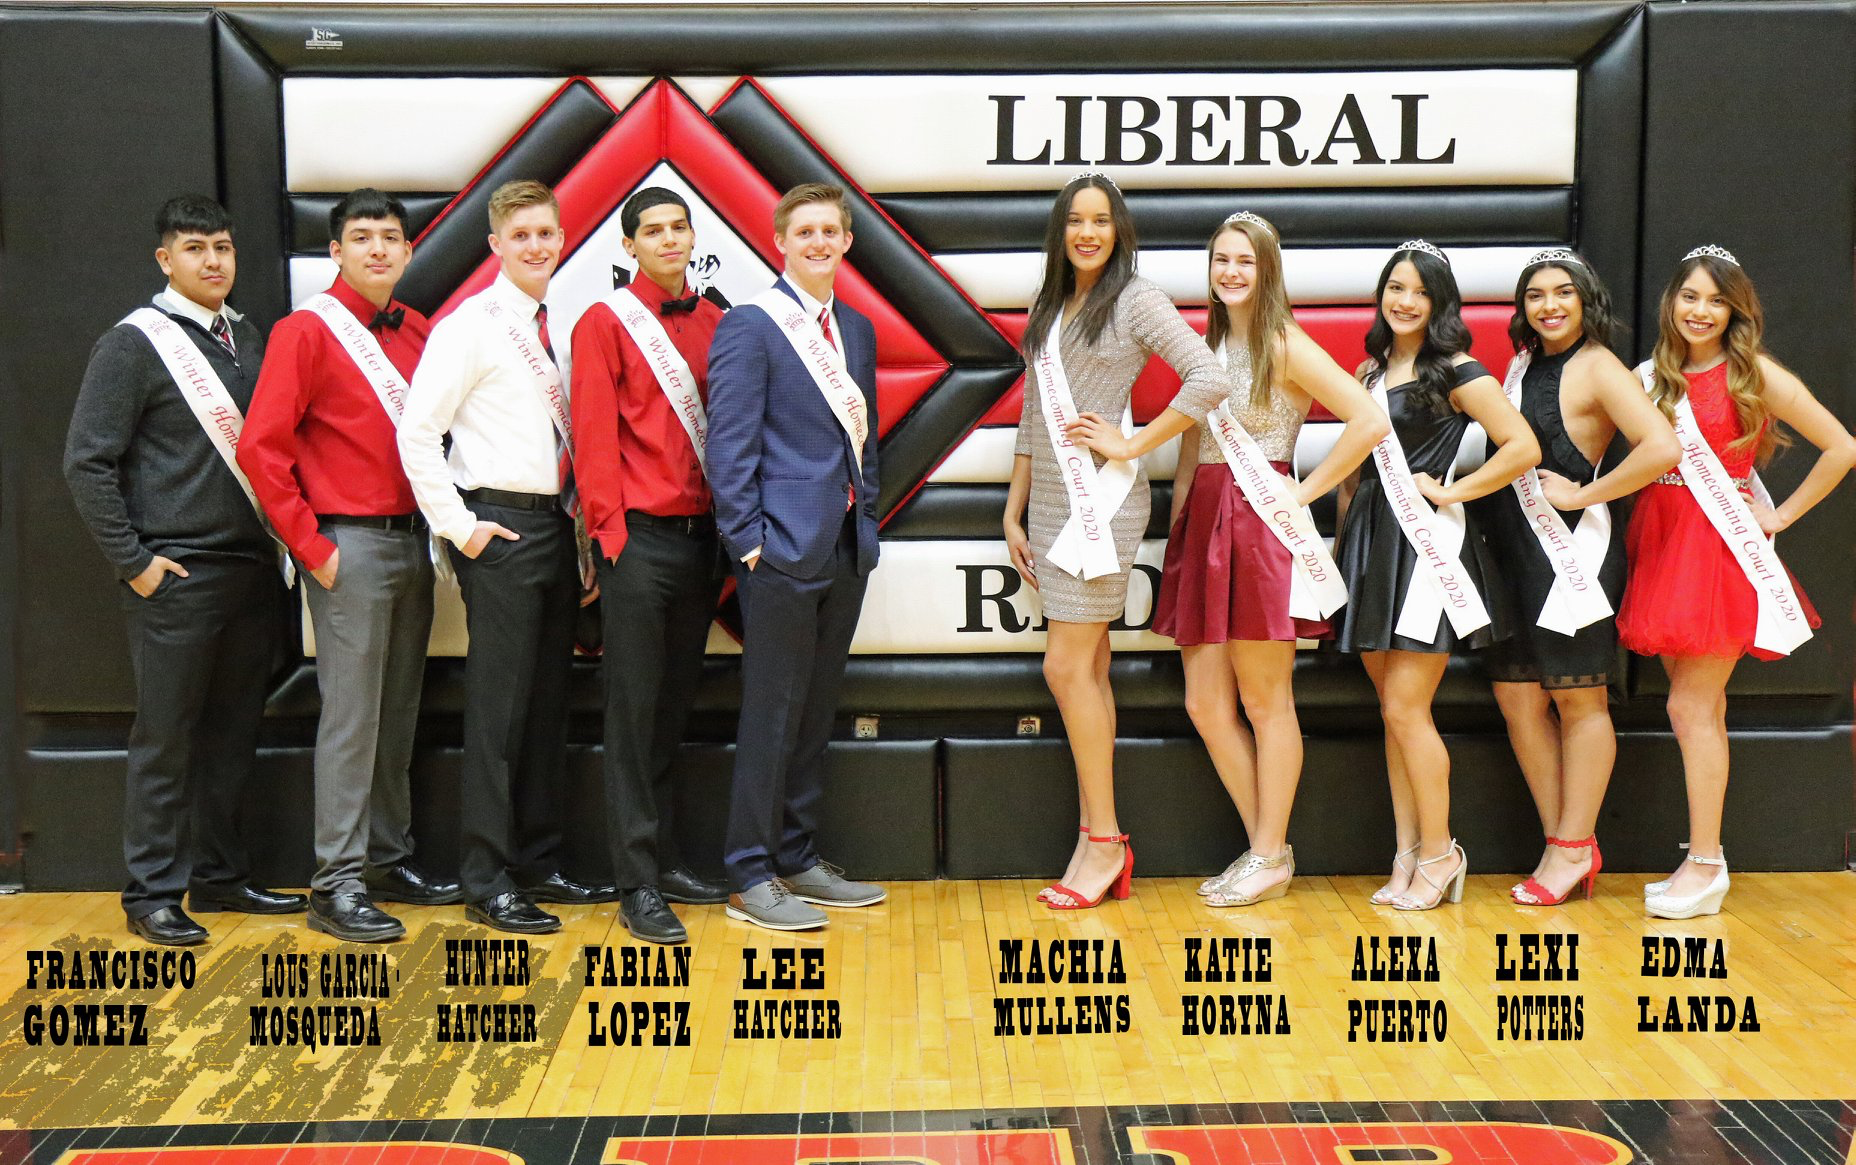 Francisco Gomez and Edma Landa Win Homecoming